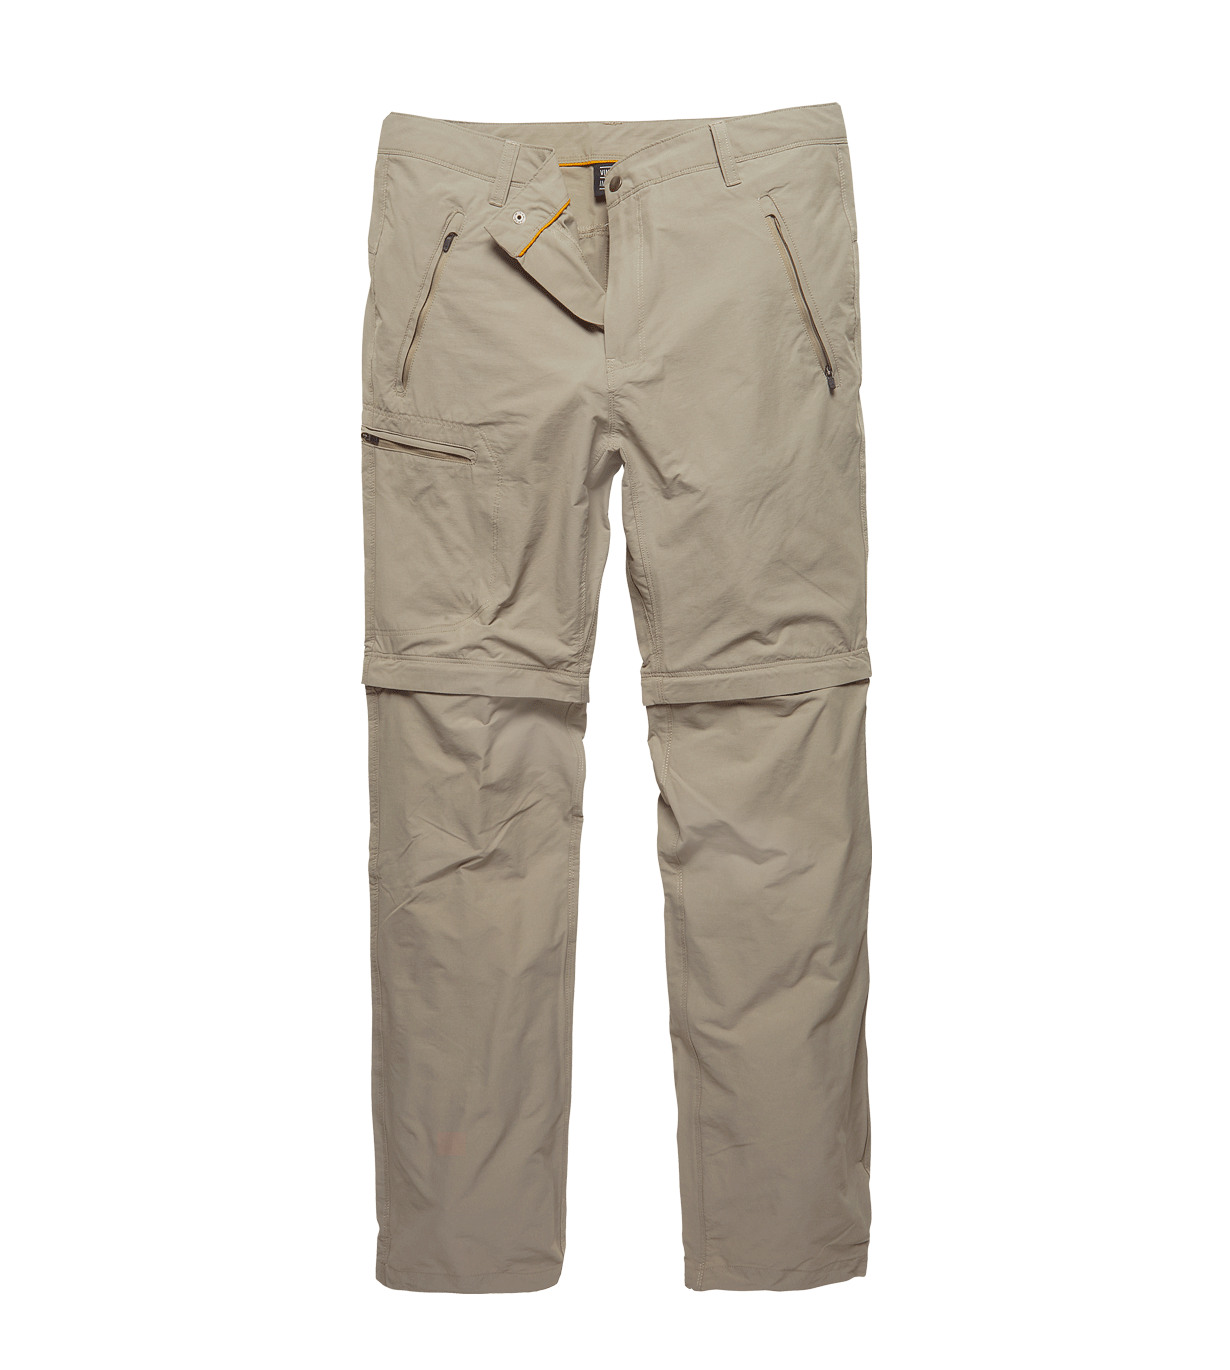 32104 - Minford technical pants